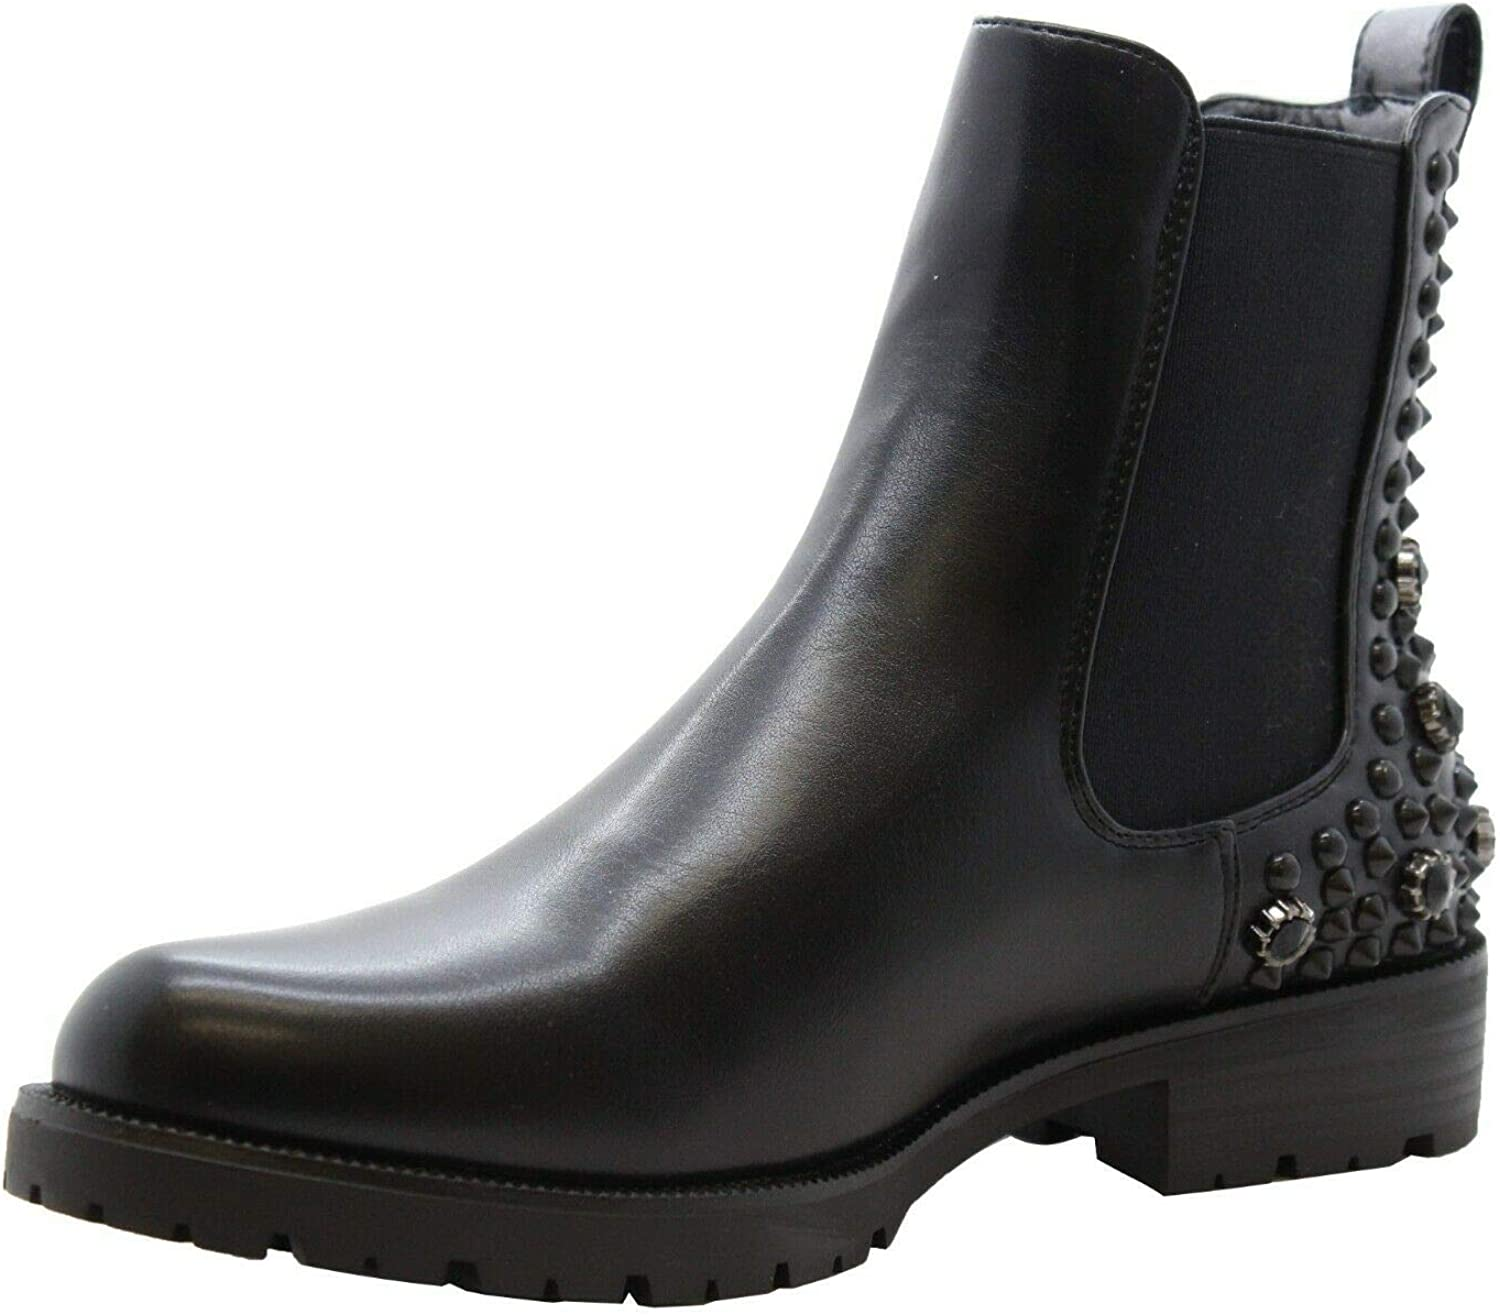 Womens Low Heel Block Studded Biker Goth Ankle Boots Shoes Size Zip Chelsea New